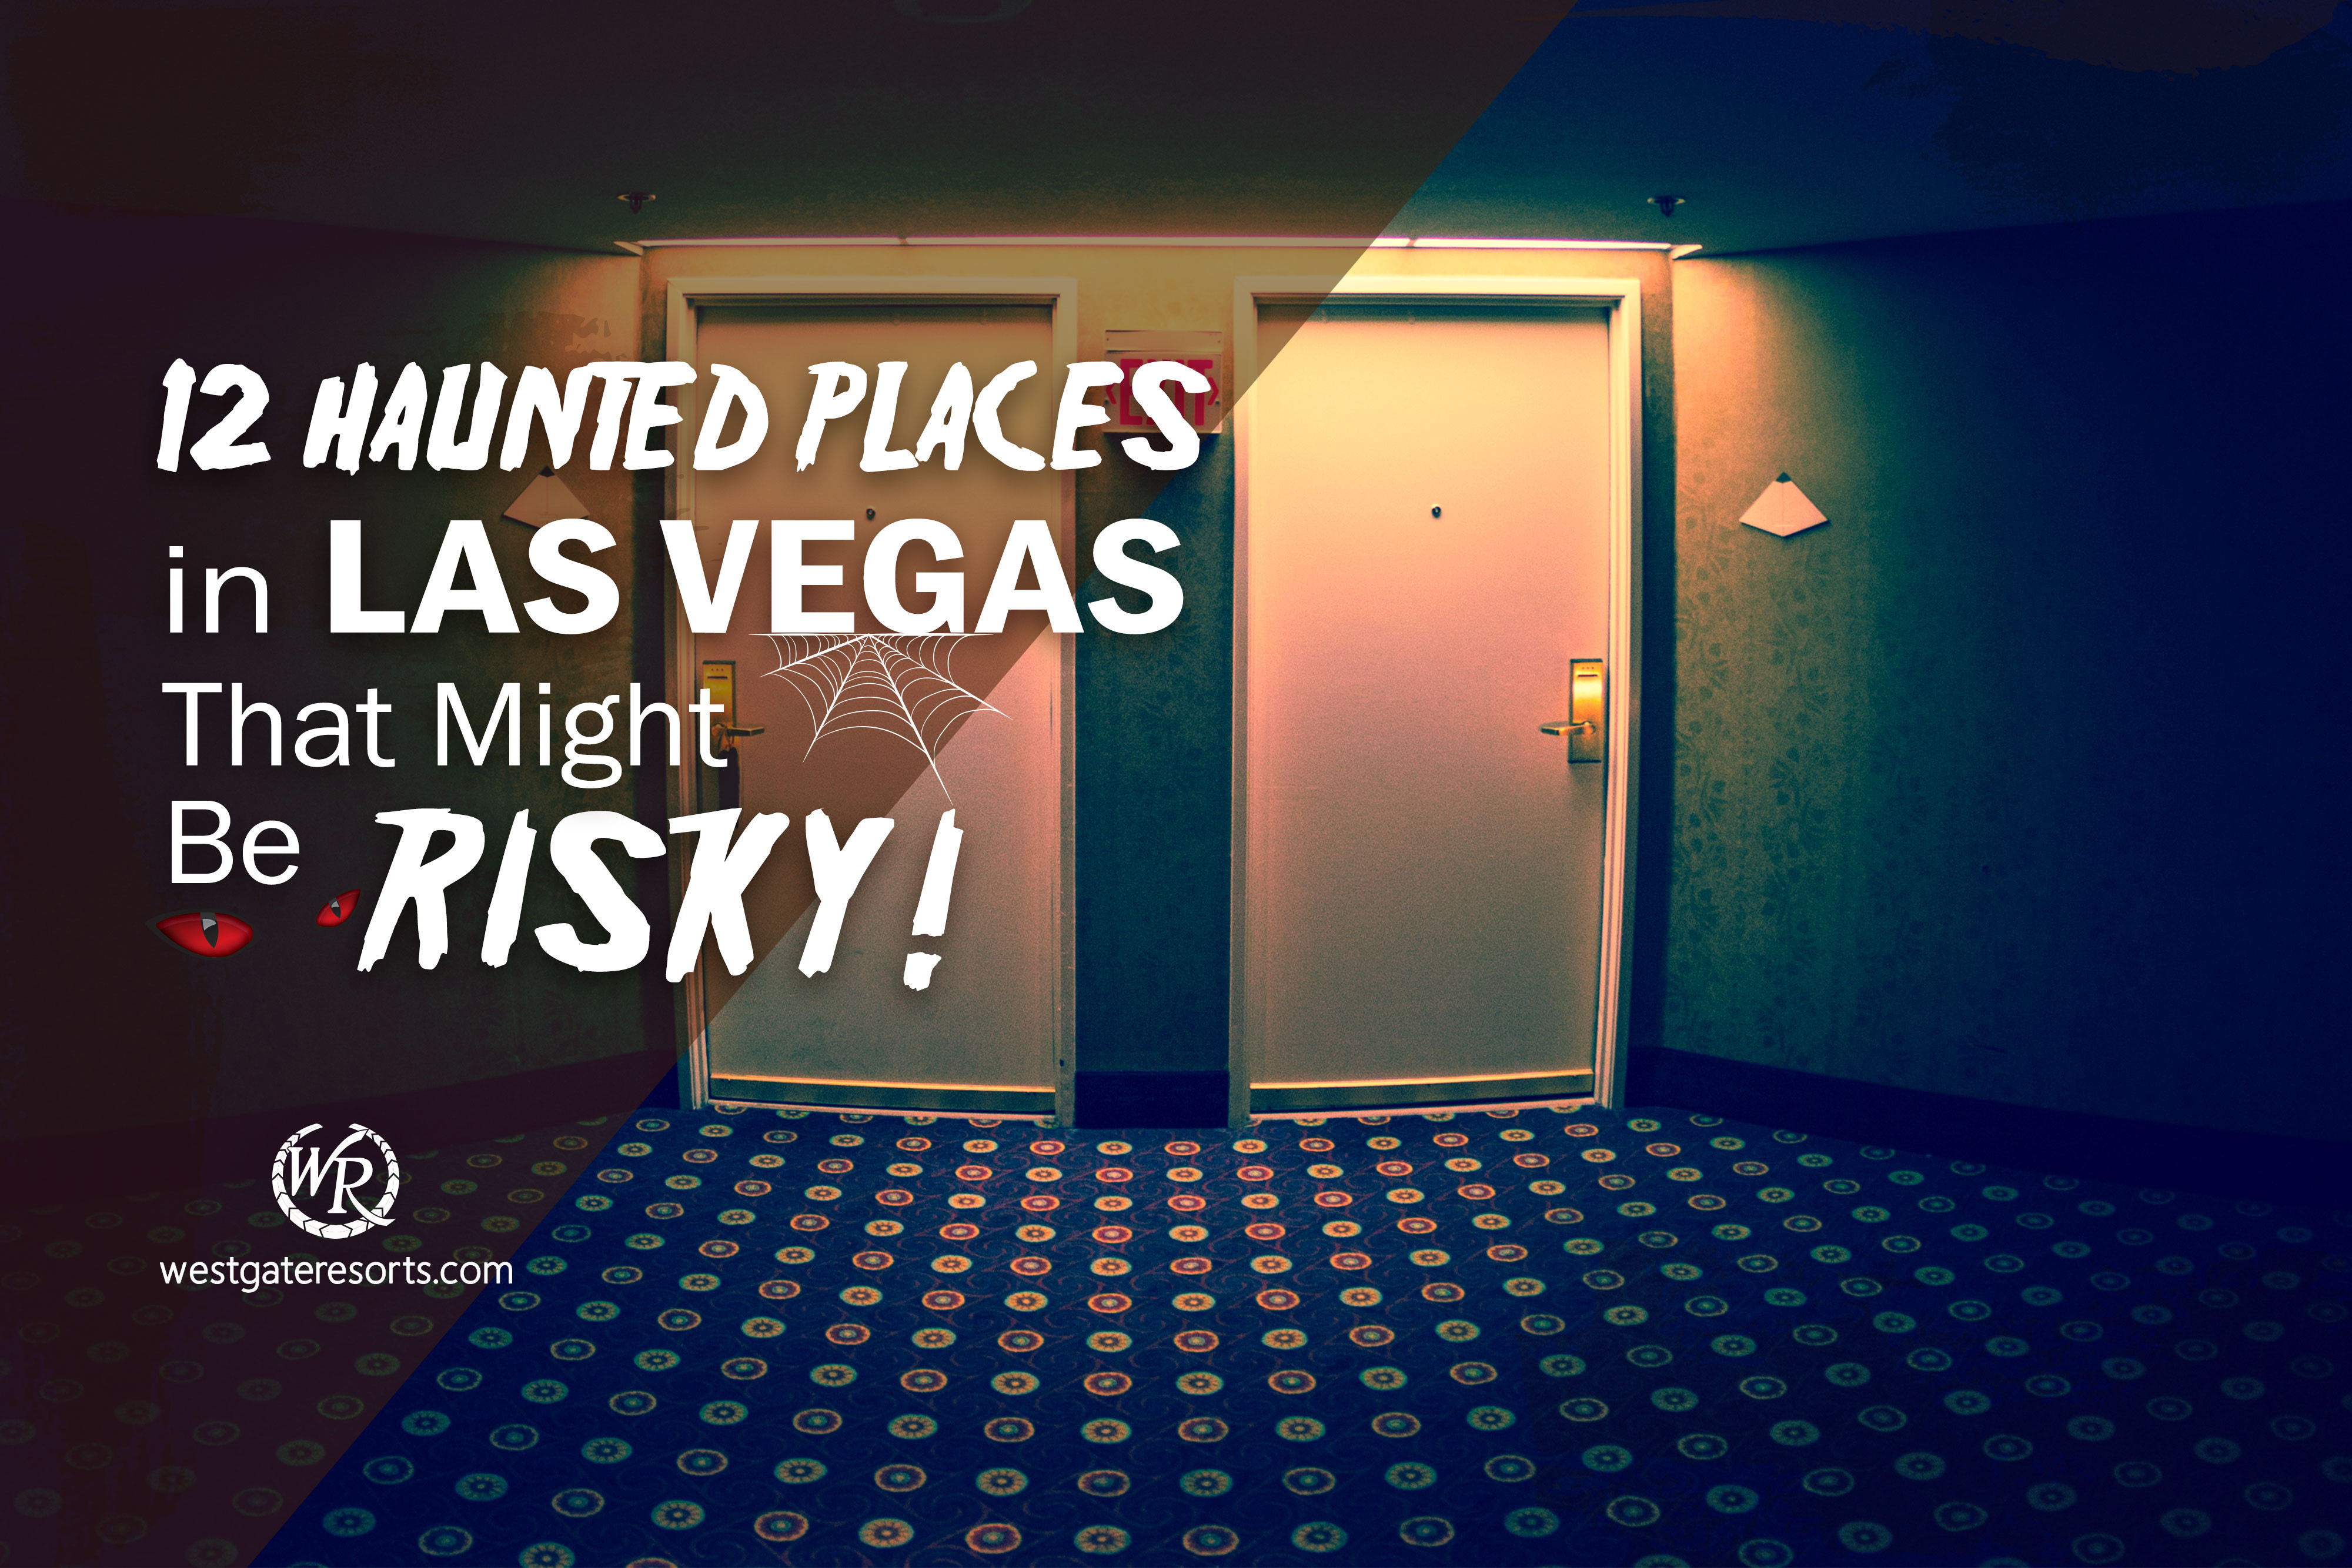 12 Haunted Places in Las Vegas That Might Be Risky!